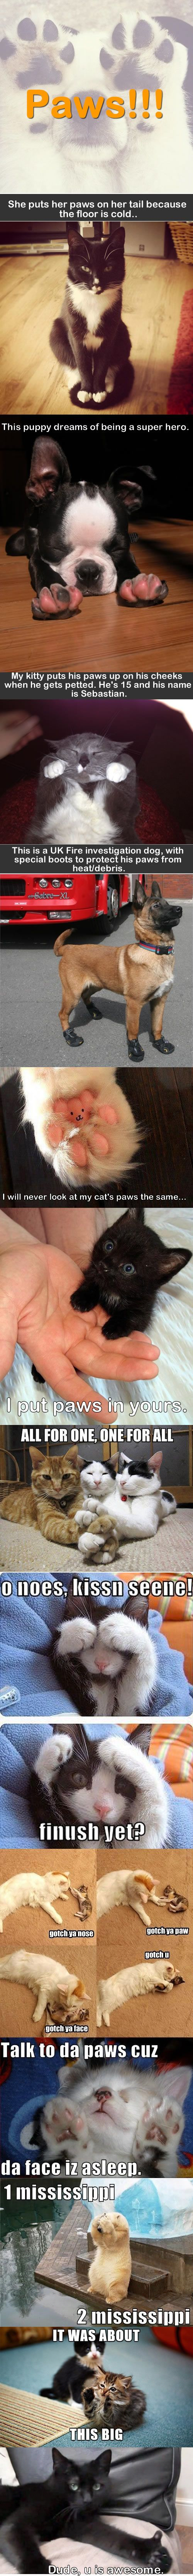 Paws!!!! cute paws of puppies and kittens